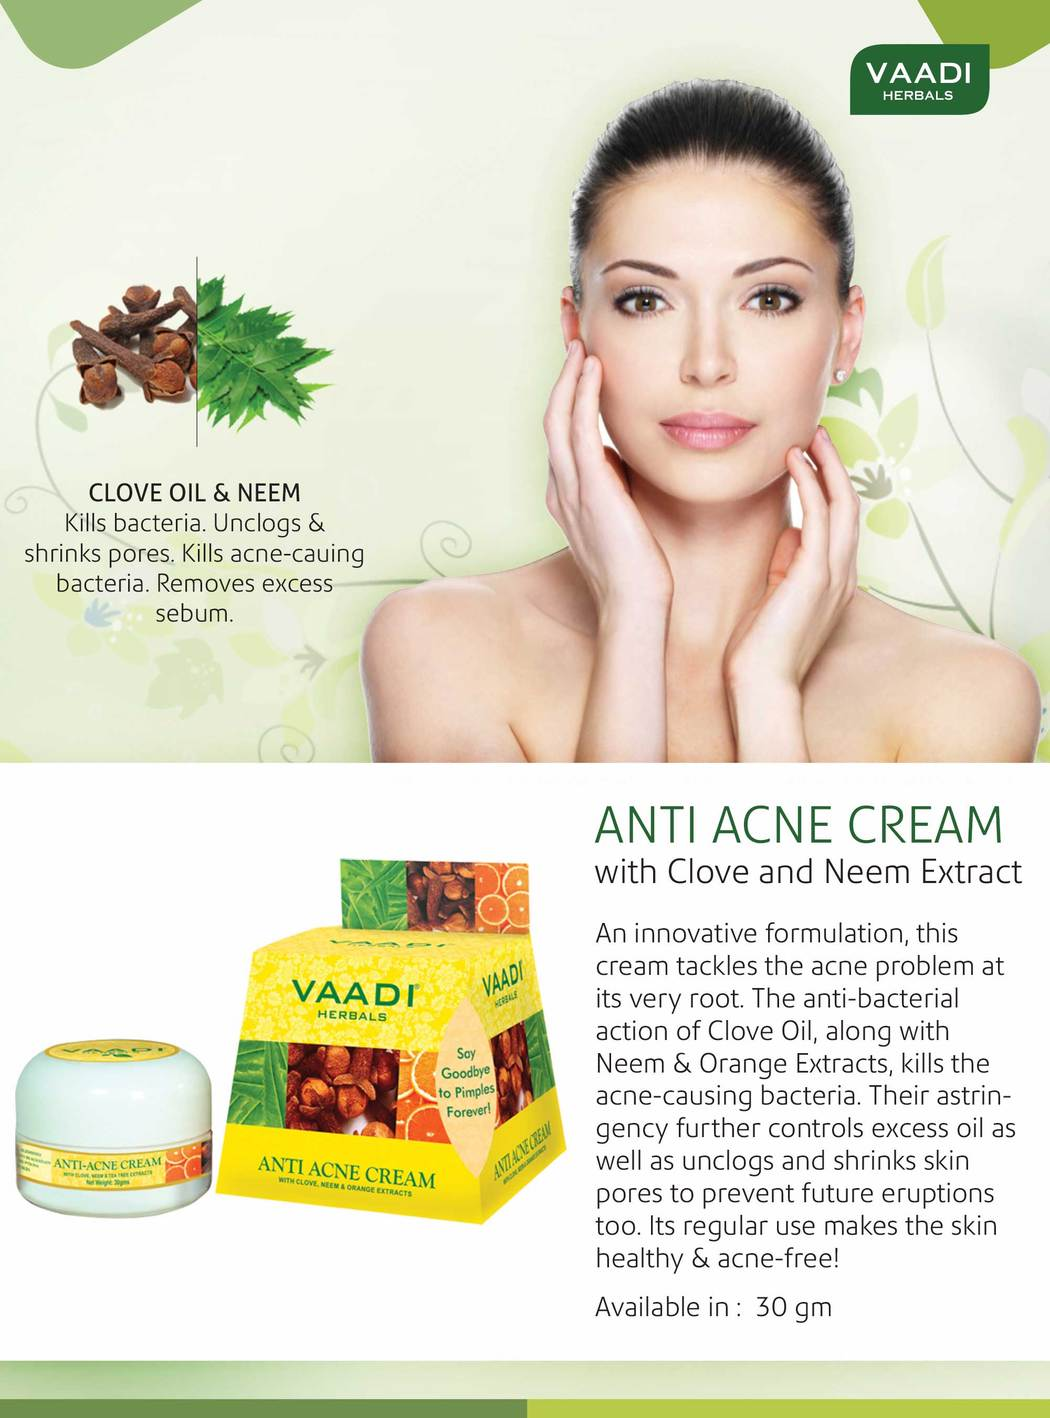 Organic Anti Acne Cream with Clove Oil & Neem Extract - Anti Bacterial Therapy - Prevents Acne (30 gms / 1.1 oz)